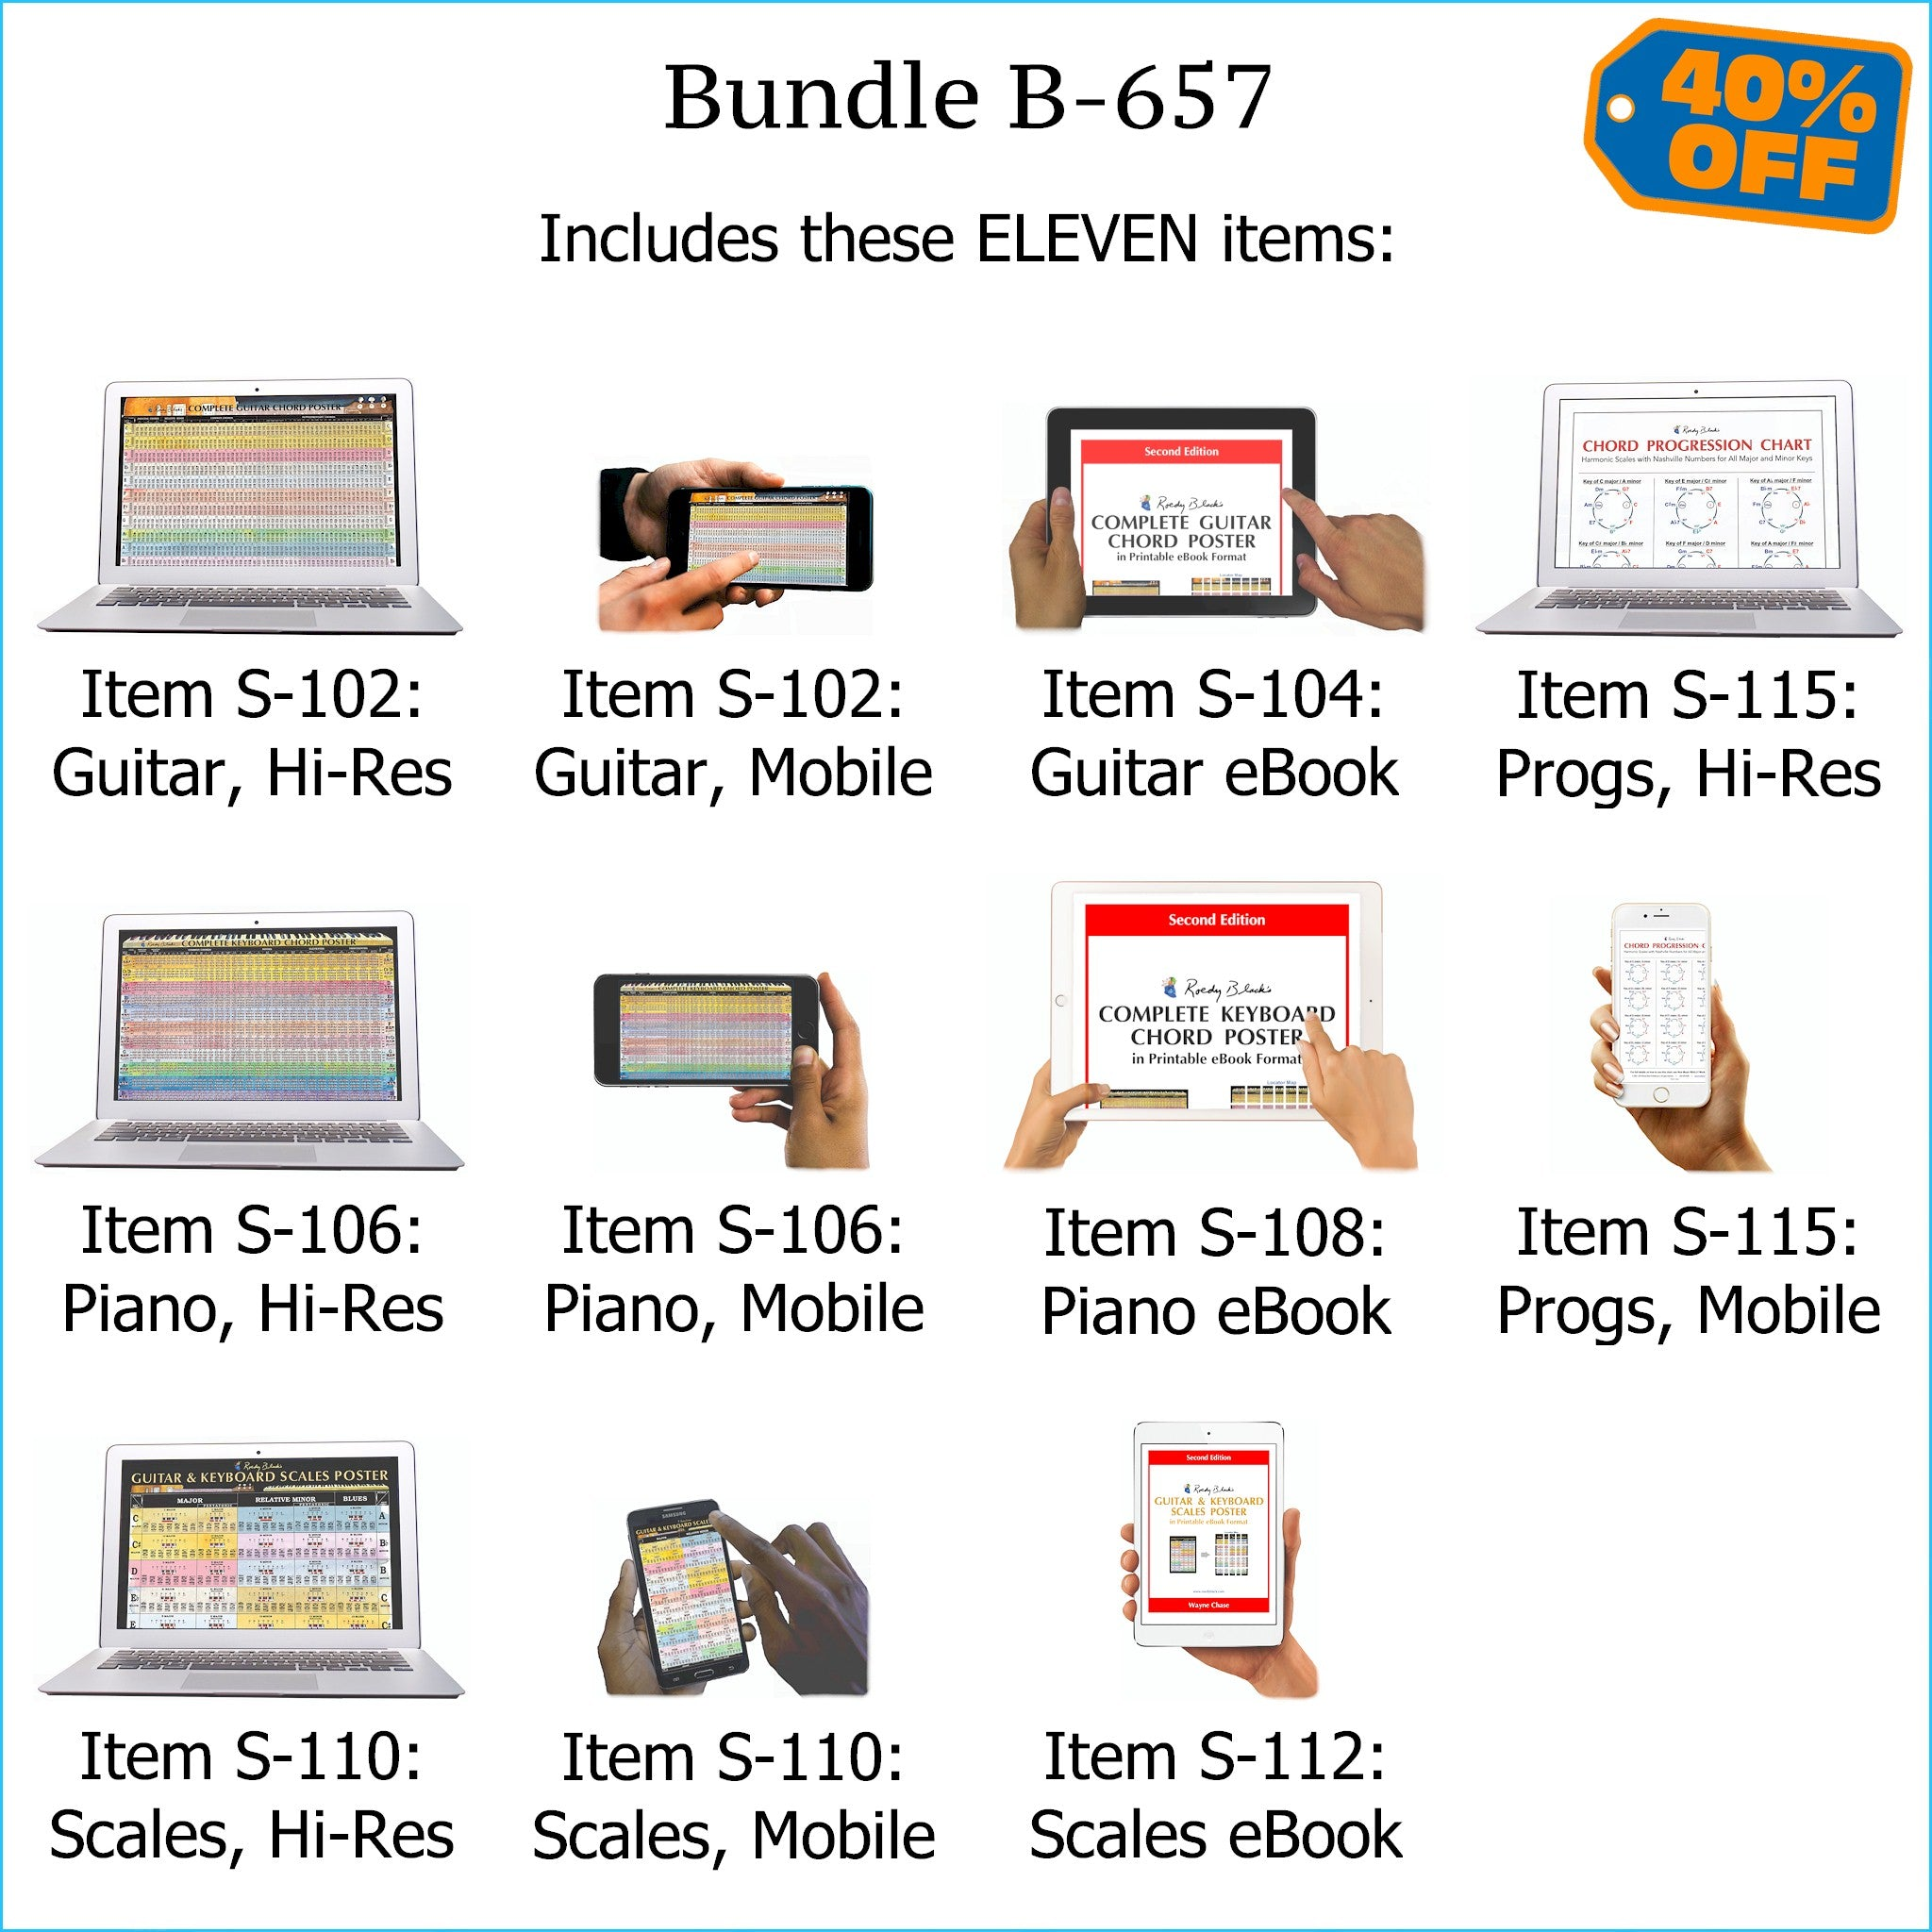 Bundle B-657: Complete Guitar Chords, Complete Keyboard Chords, Scales, Chord Progressions - E-Posters and Printable E-Books. FREE Download Protection.